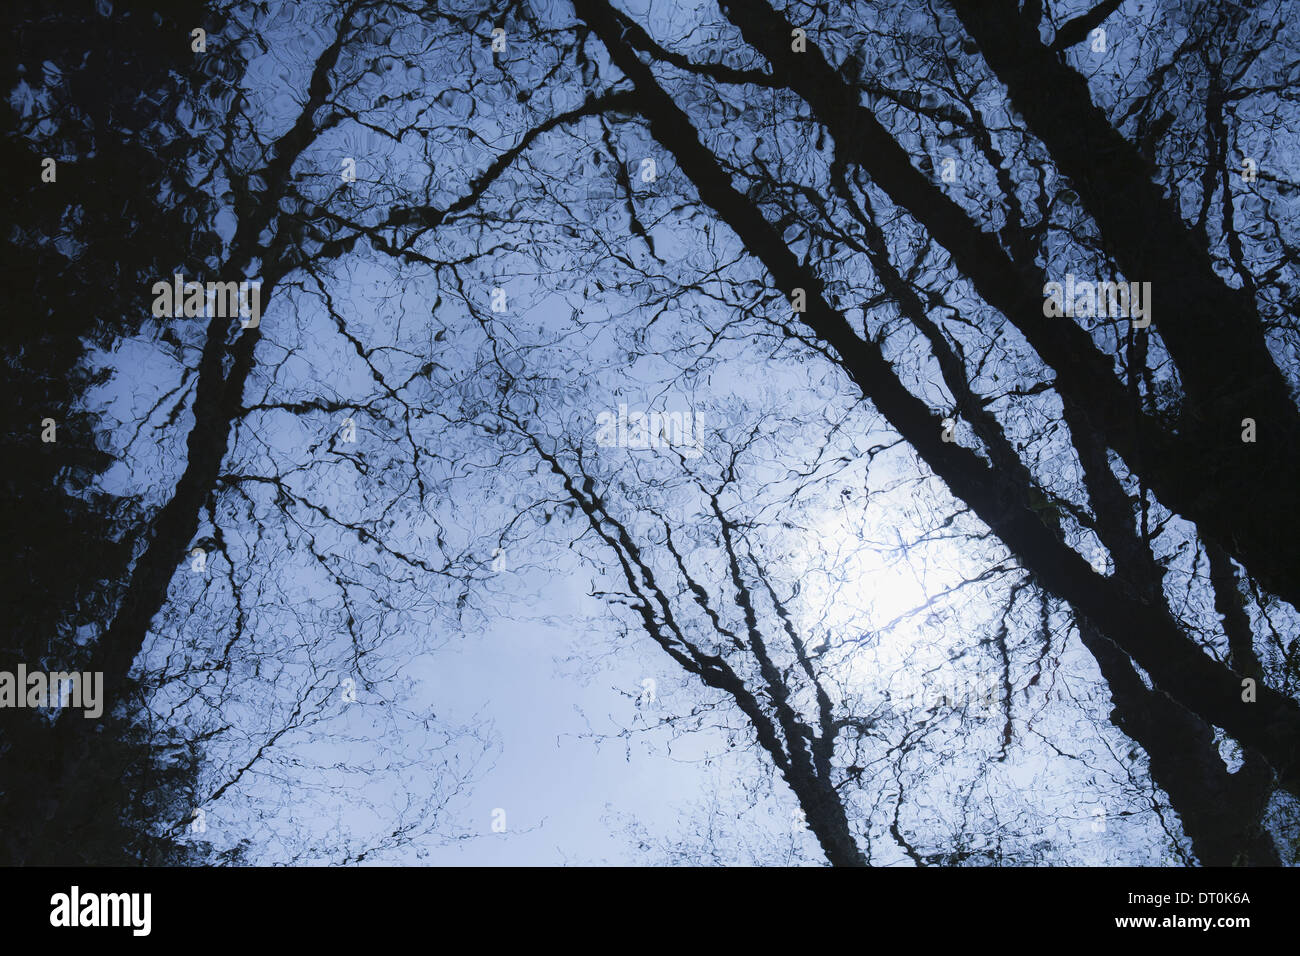 Trees reflected in calm water surface at dusk USA Stock Photo